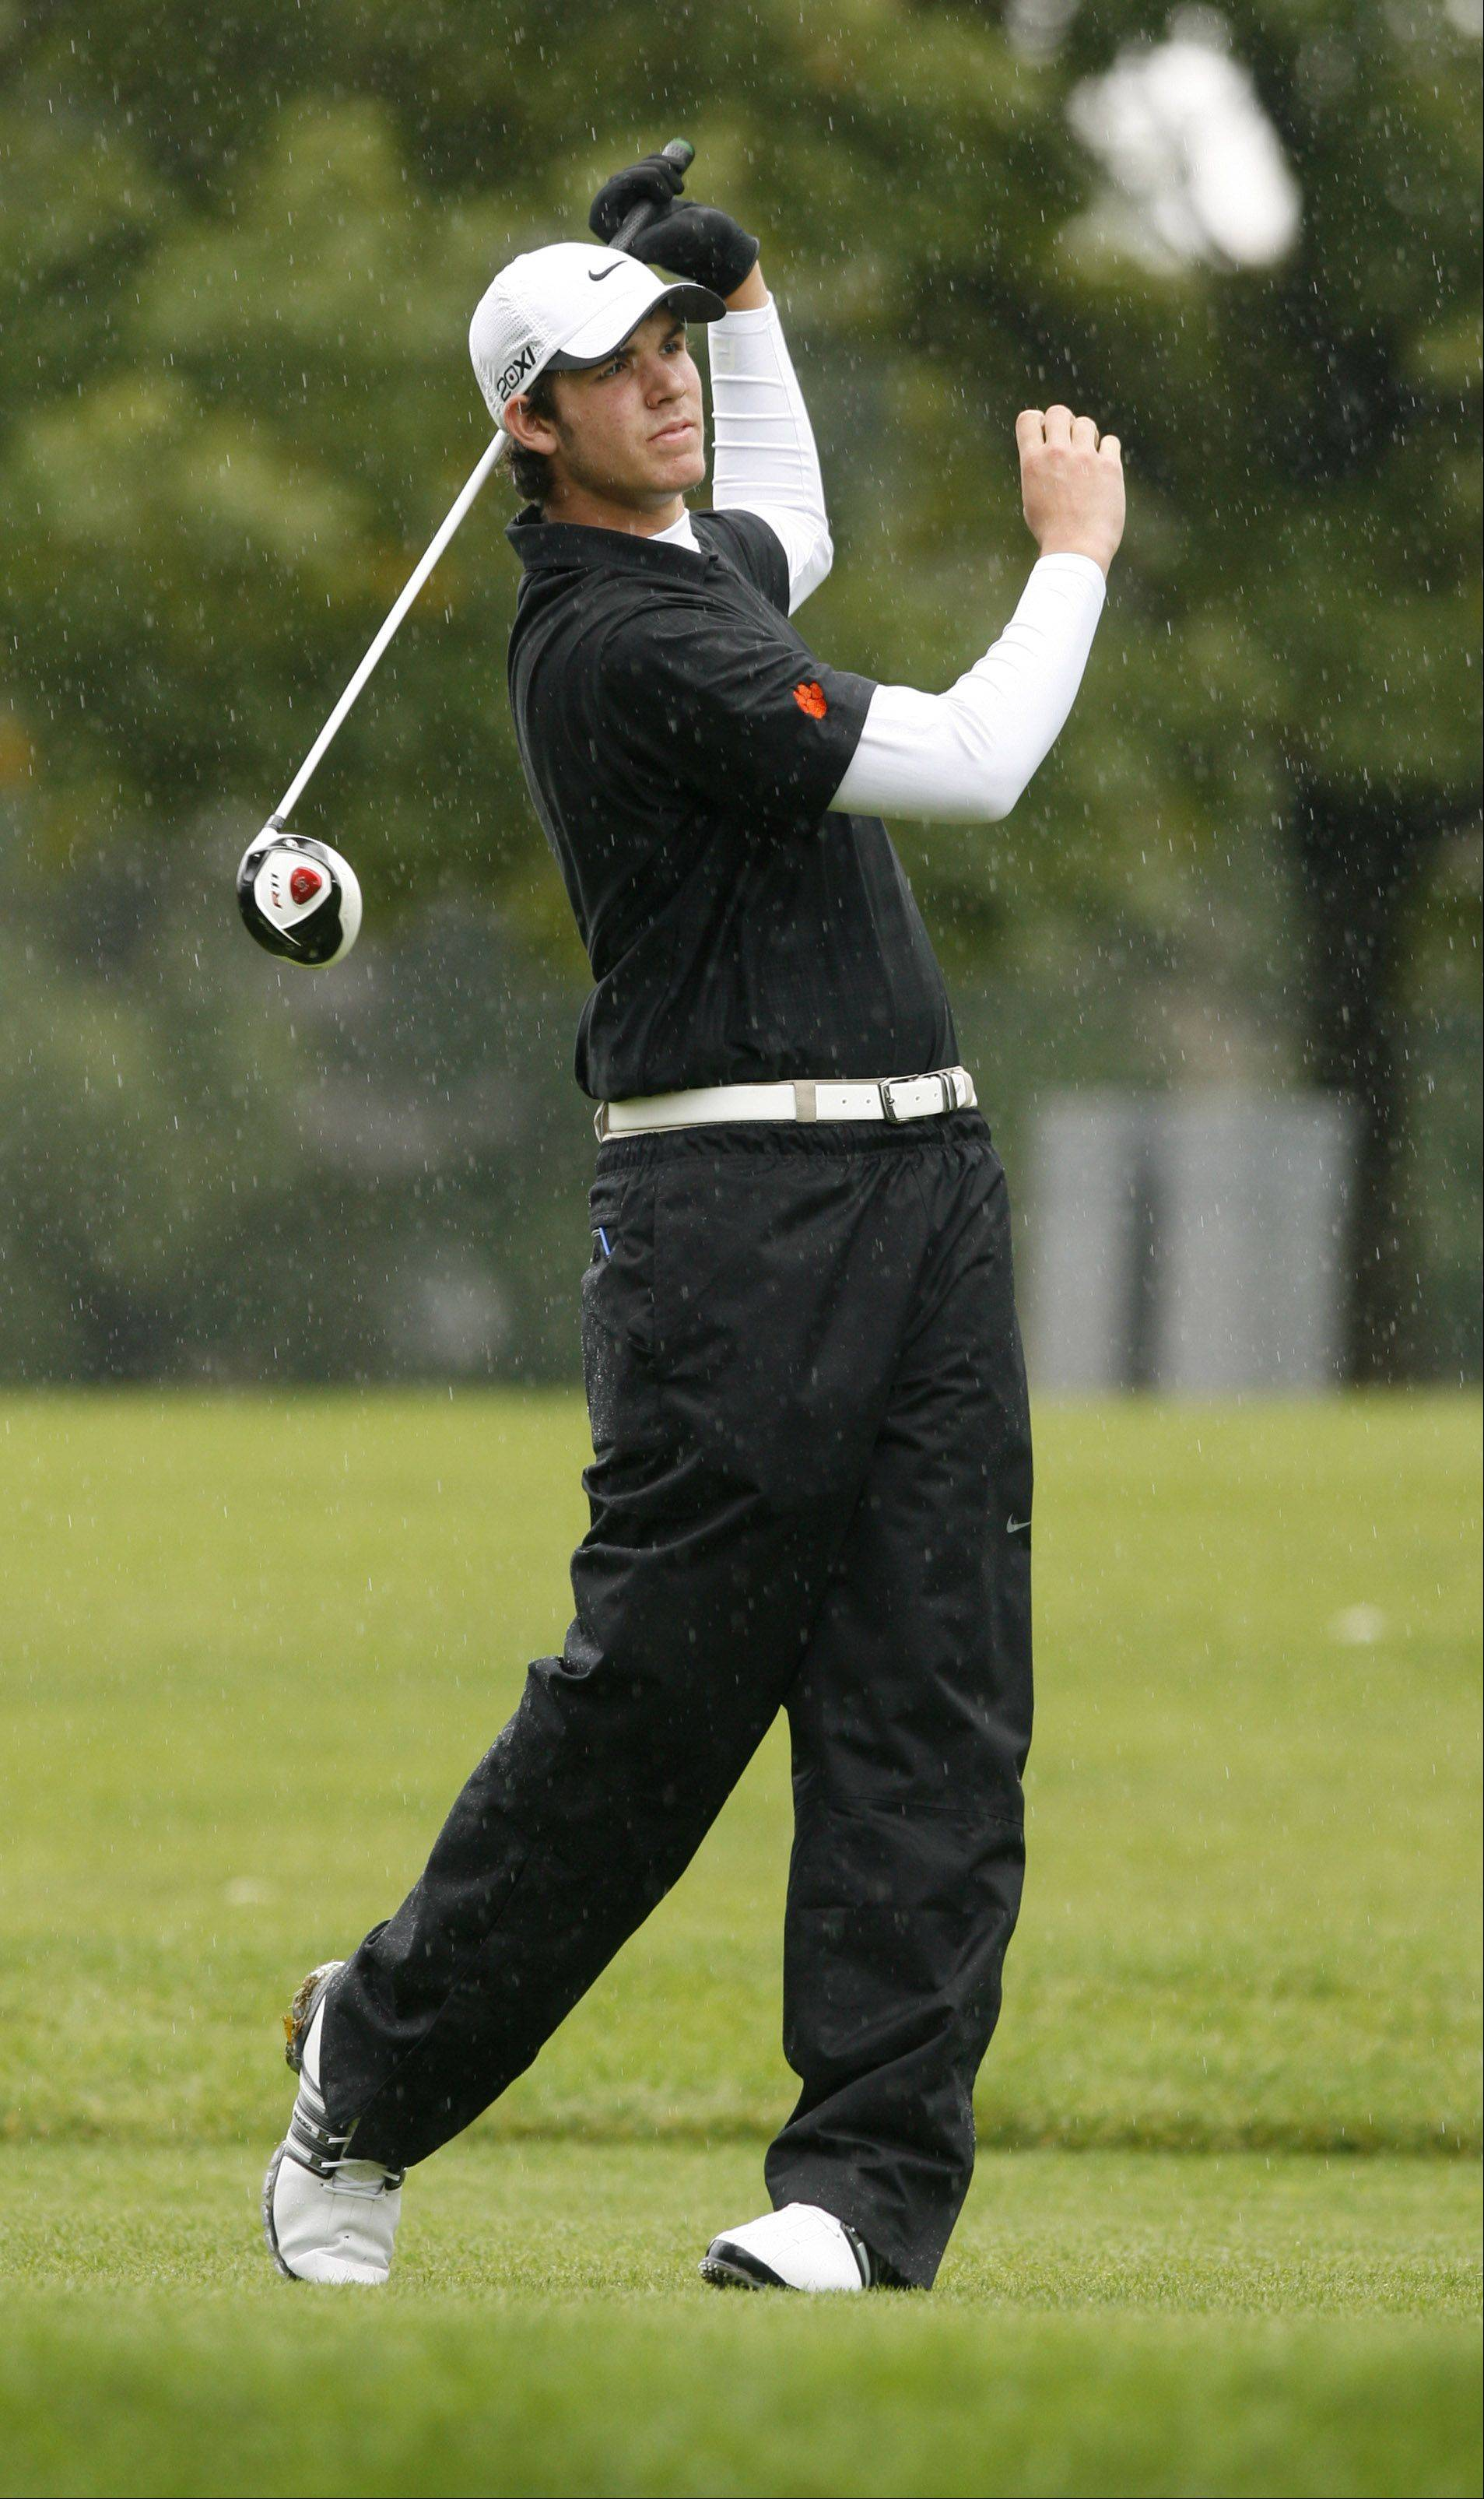 Tee-K Kelly of Wheaton Warrenville South High School tees off during the Boys DuPage Valley Conference tournament at Bartlett Hills Golf Course.